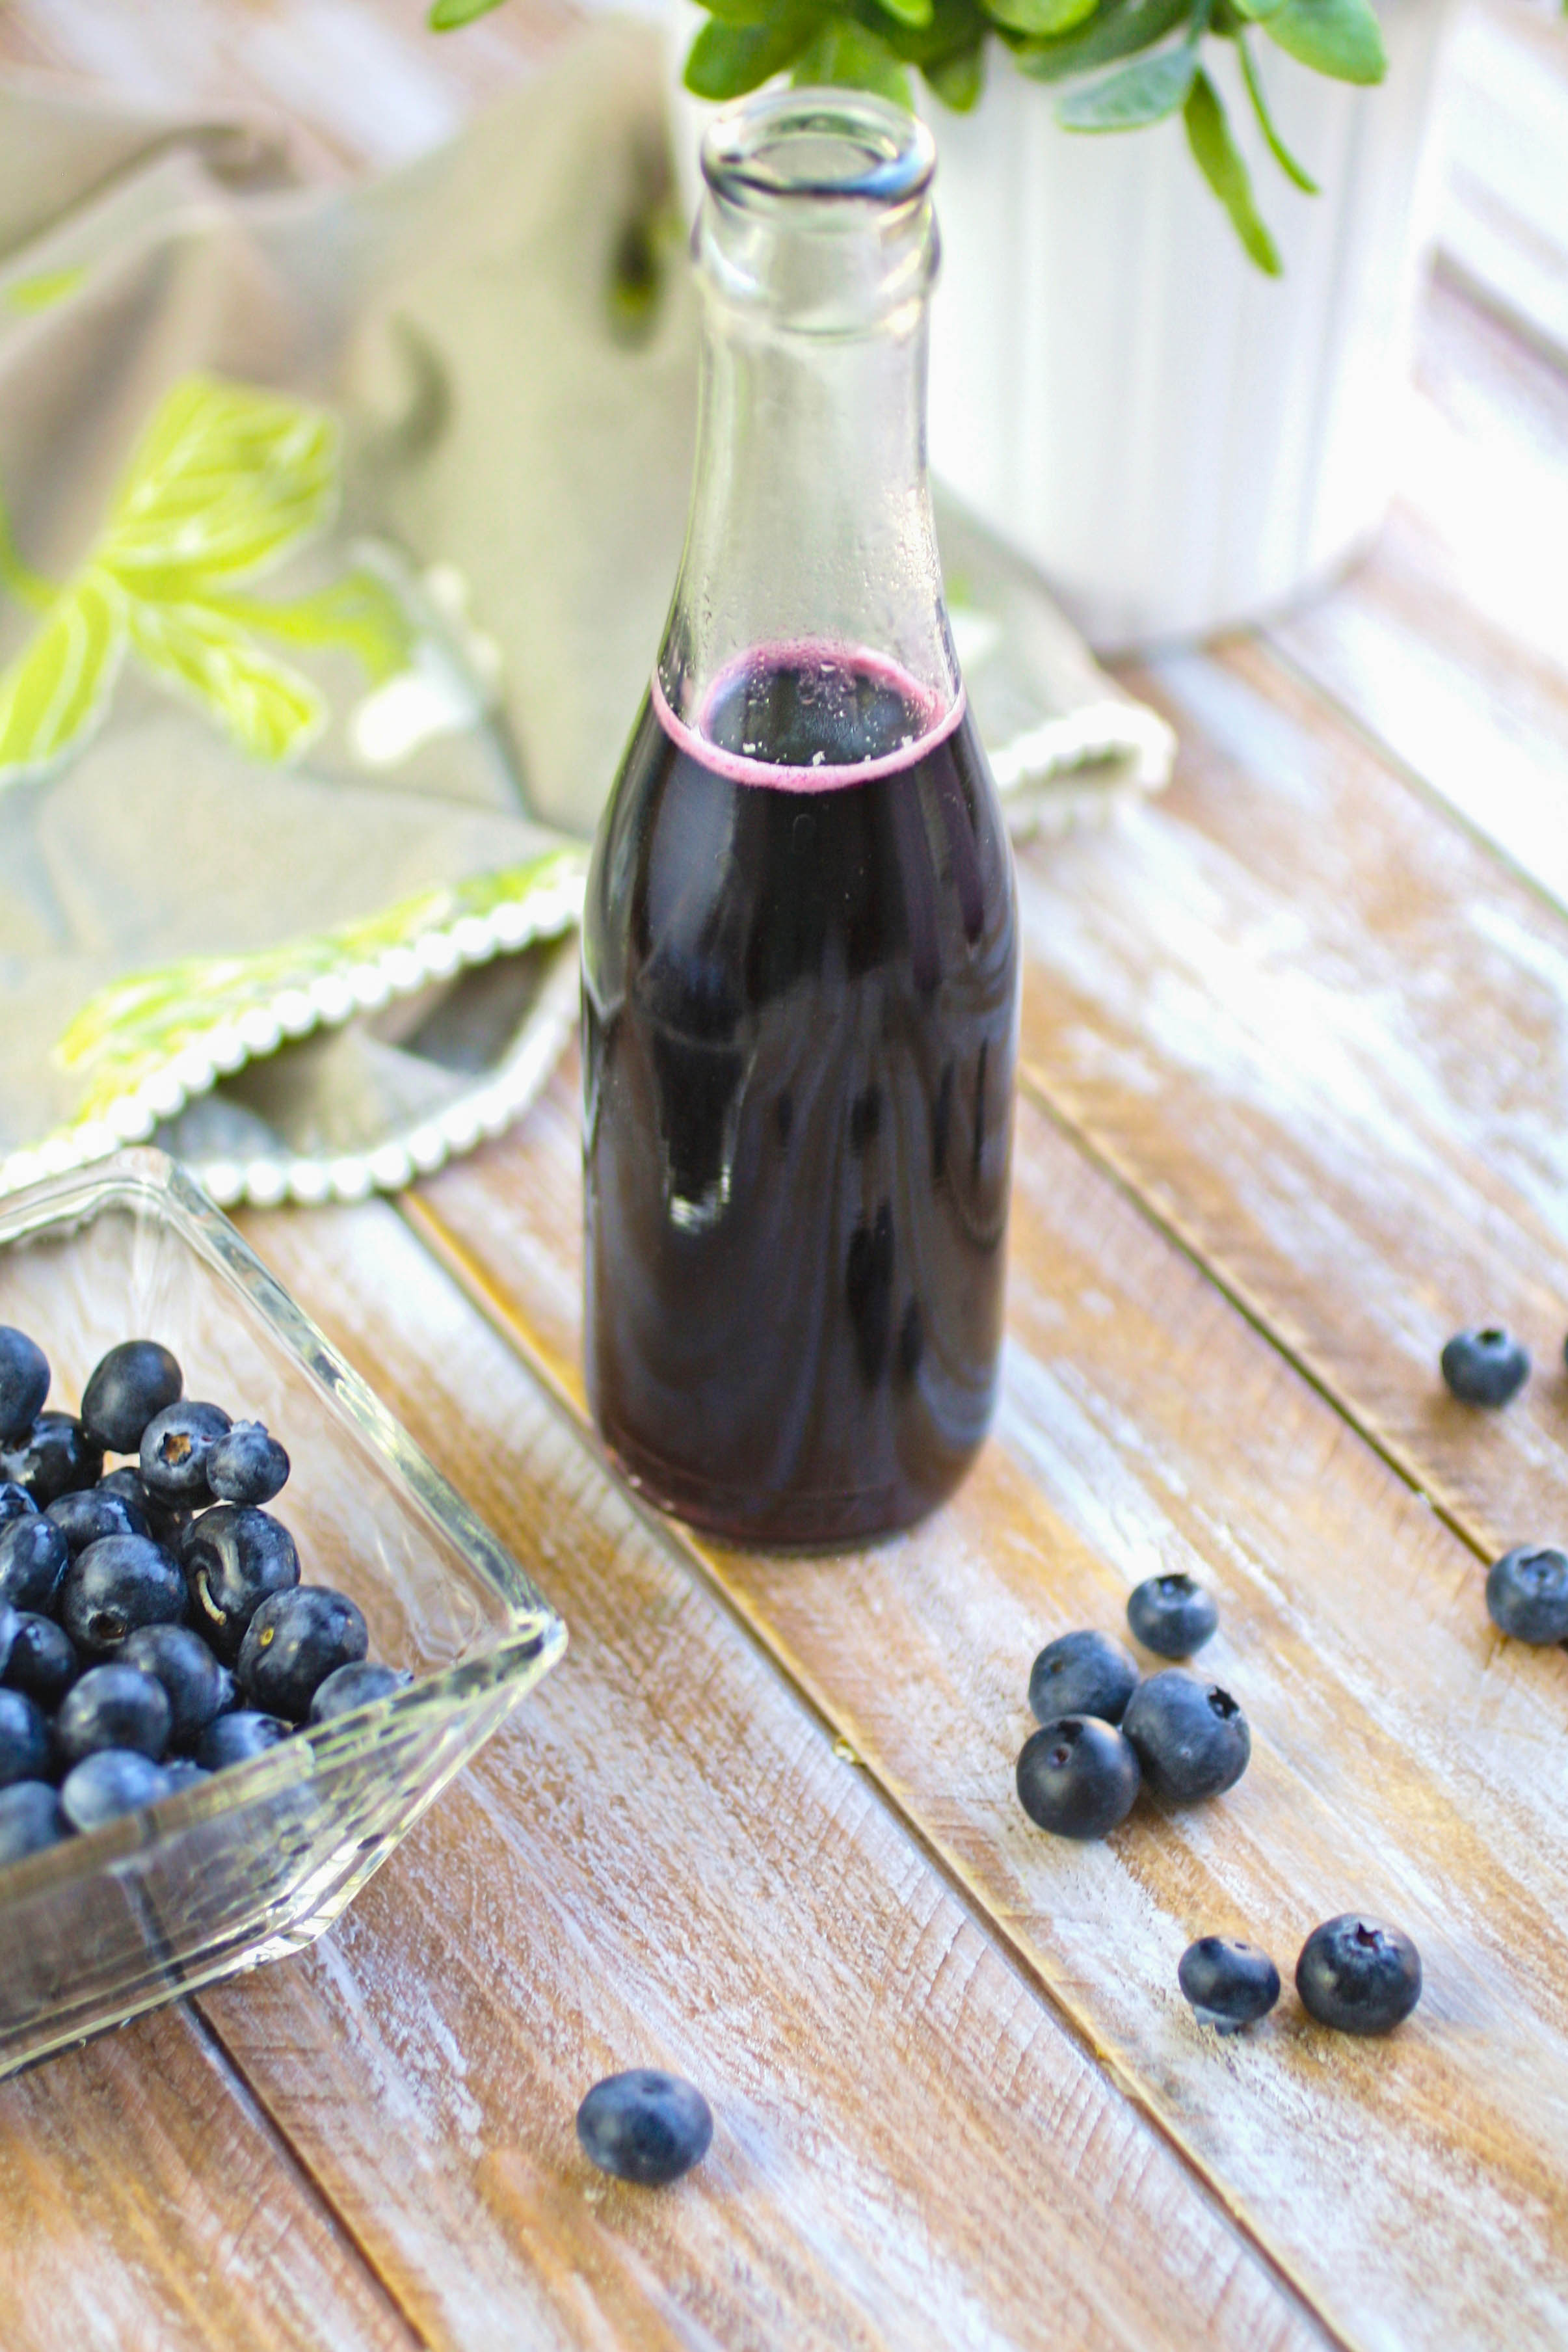 Blueberry Italian Cream Soda drinks are easy to make with your own blueberry syrup. Blueberry Italian Cream Soda drinks are fruity, pretty, and so tasty!